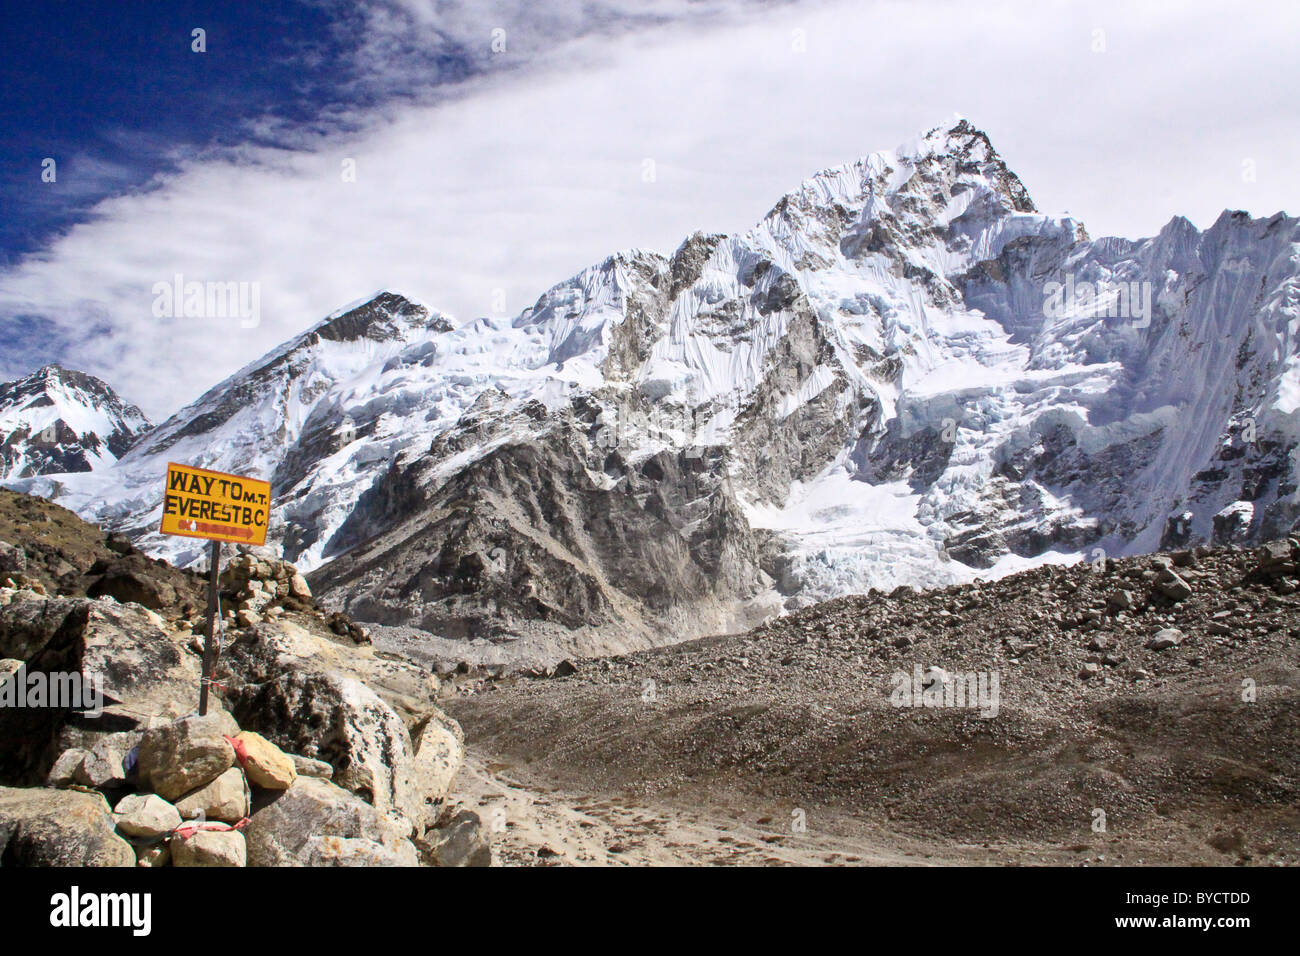 Sights and views, Everest Base Camp Trail, Nepal, Asia - Stock Image